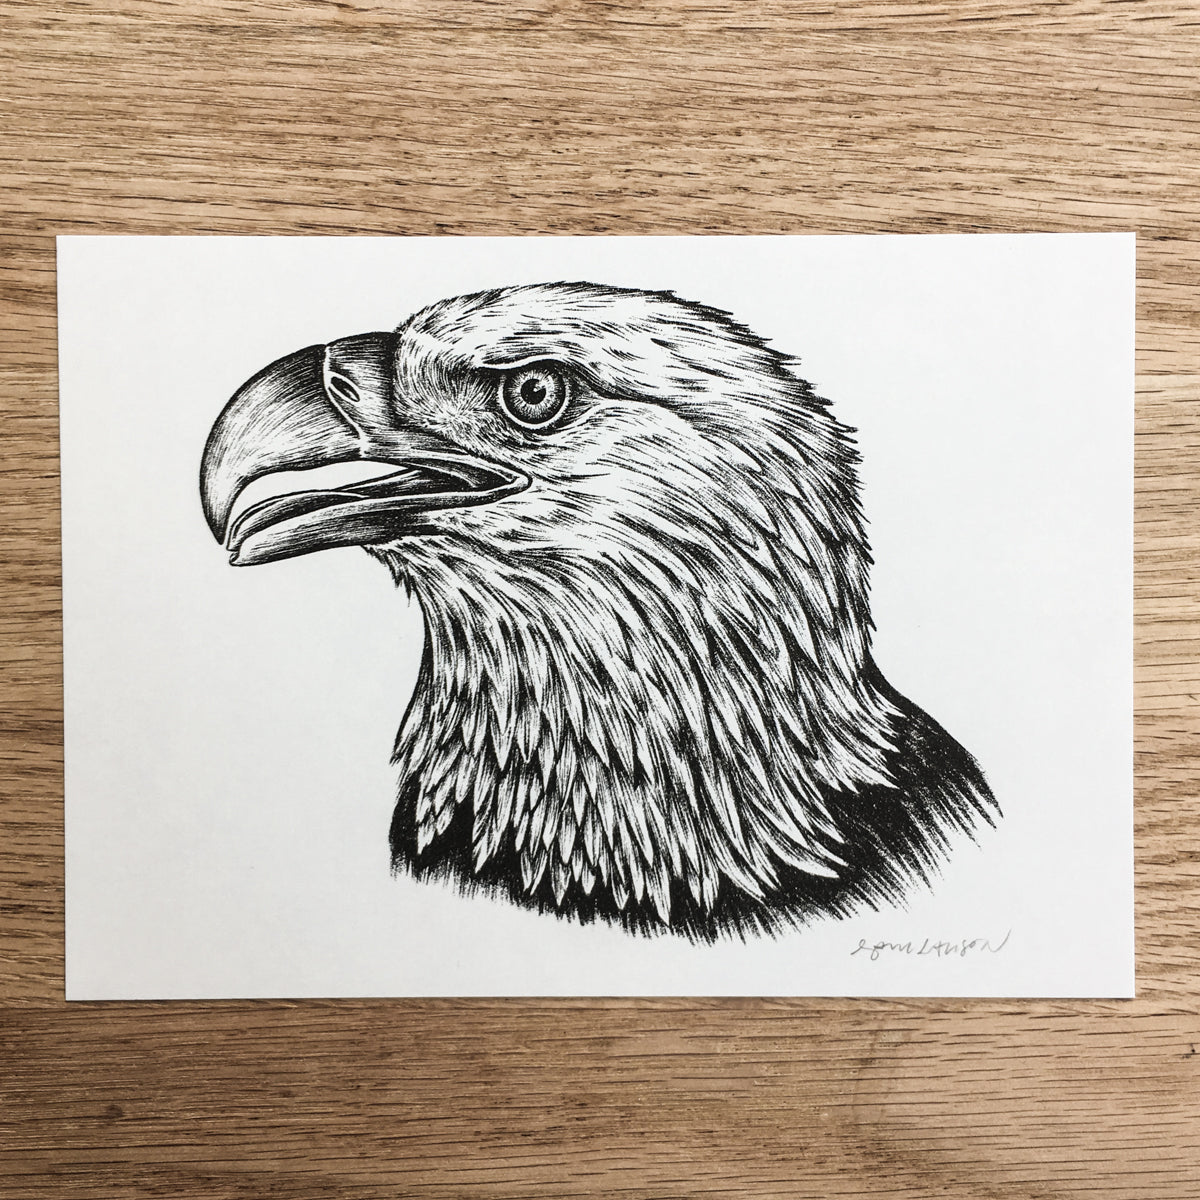 Bald Eagle - Signed Print #101